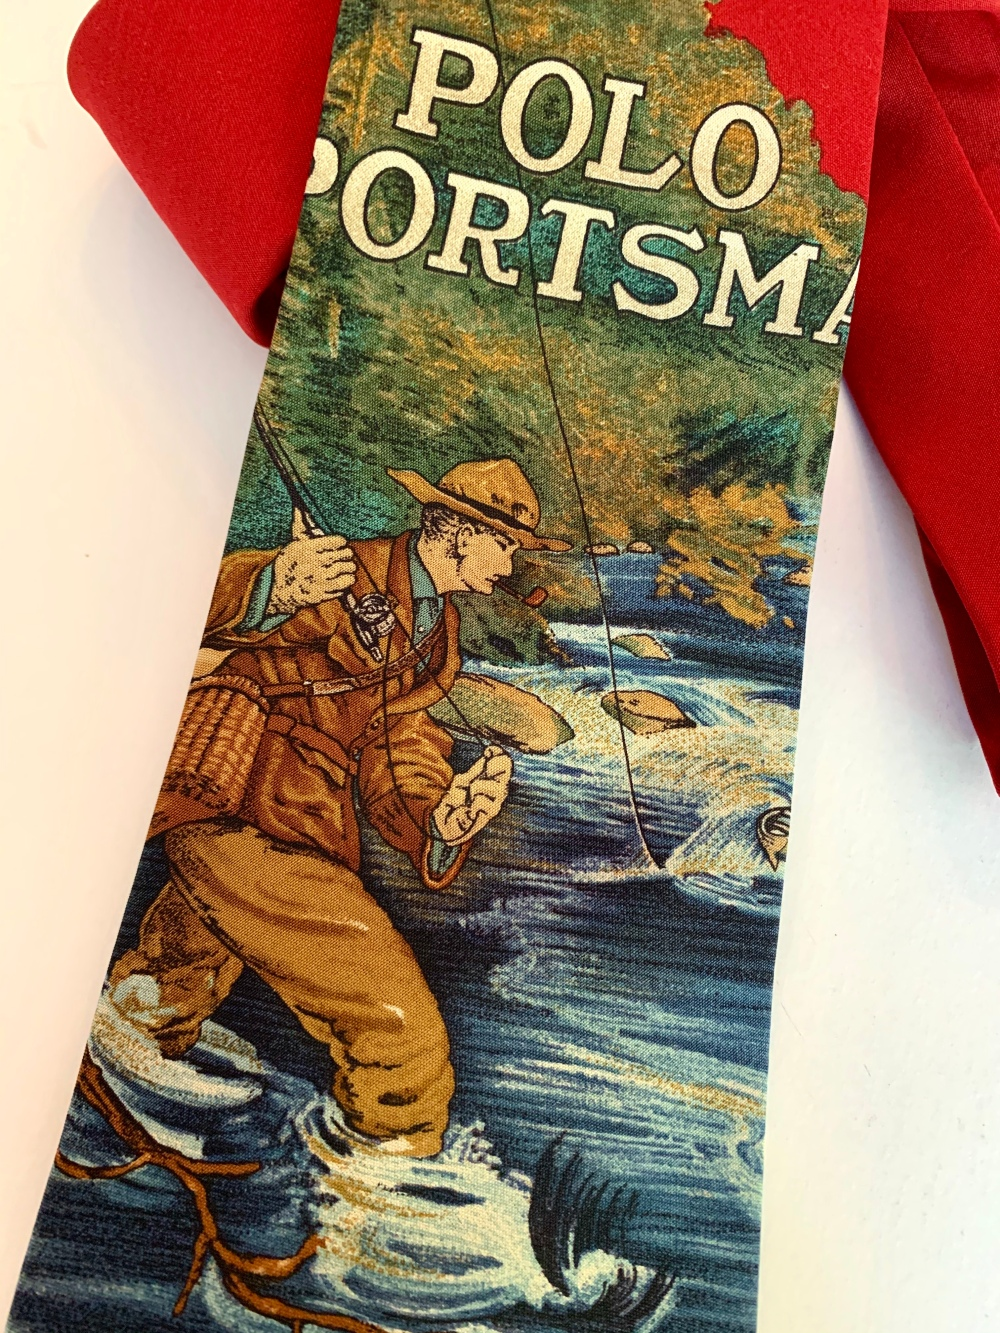 Field and Stream Magazine Cover on Vintage Polo Tie